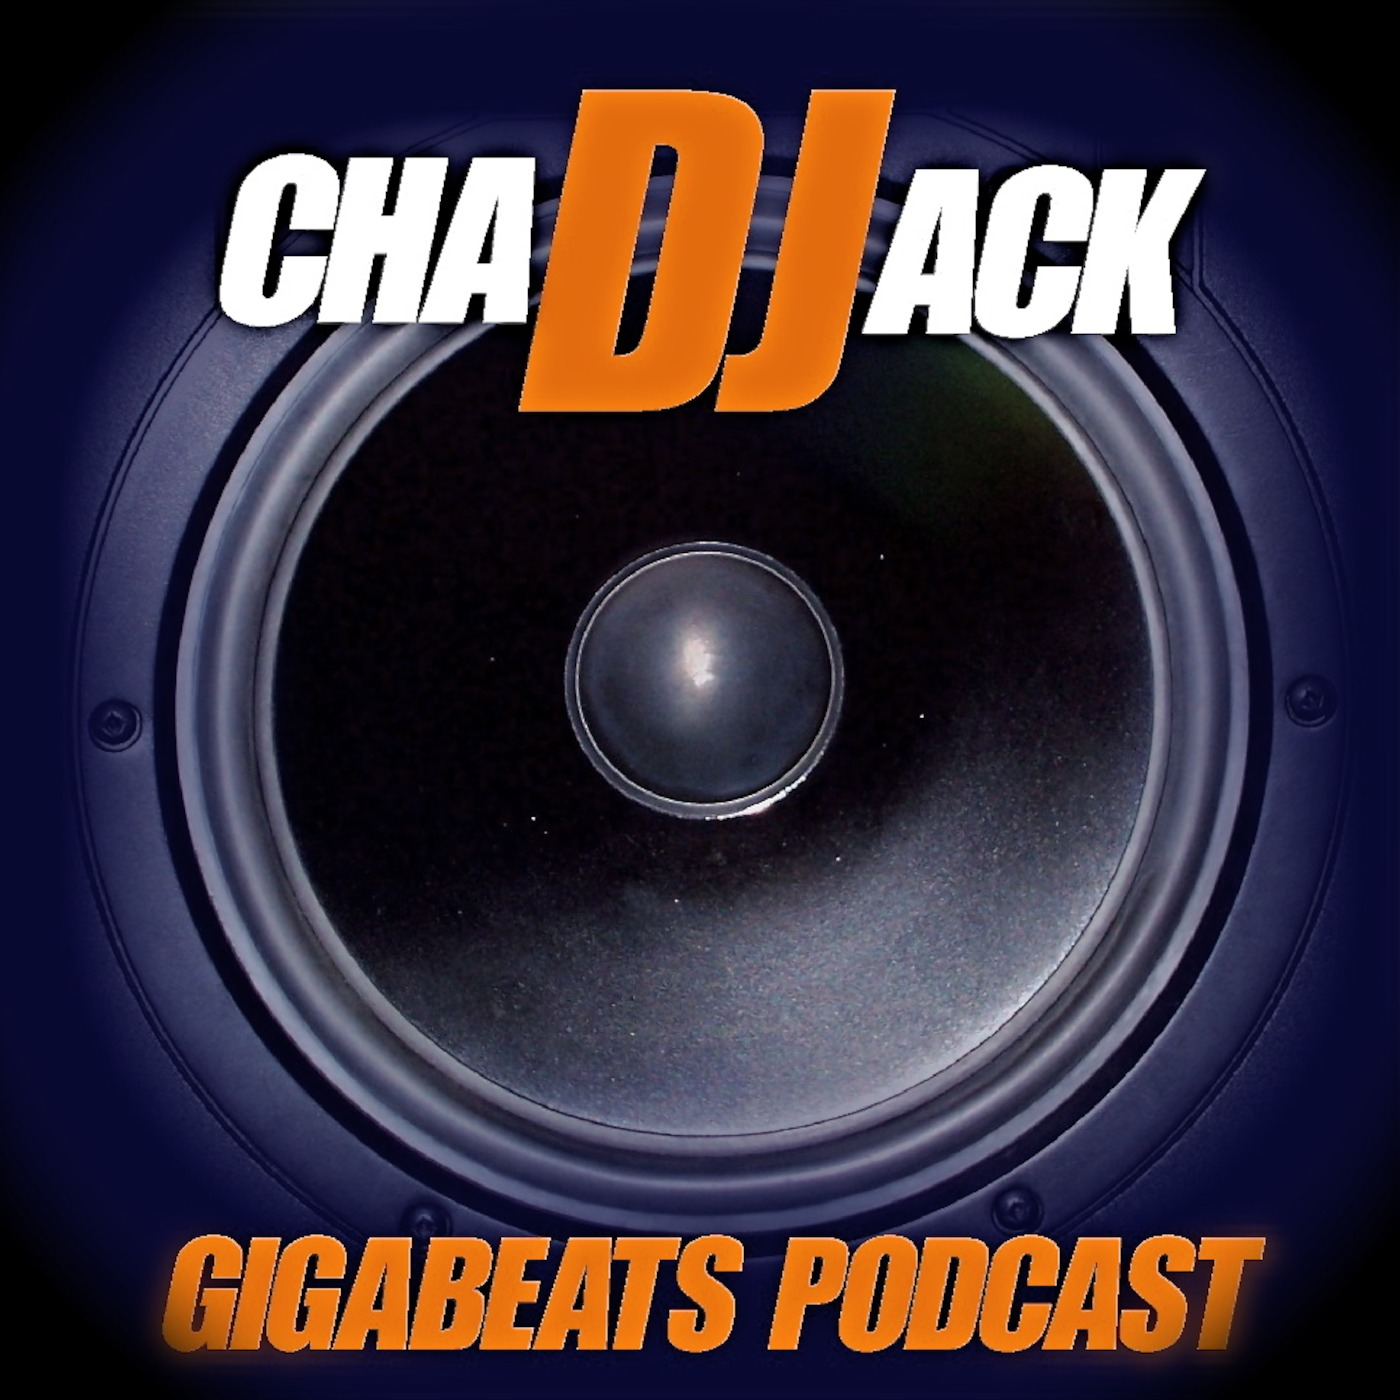 DJ Chad Jack Presents